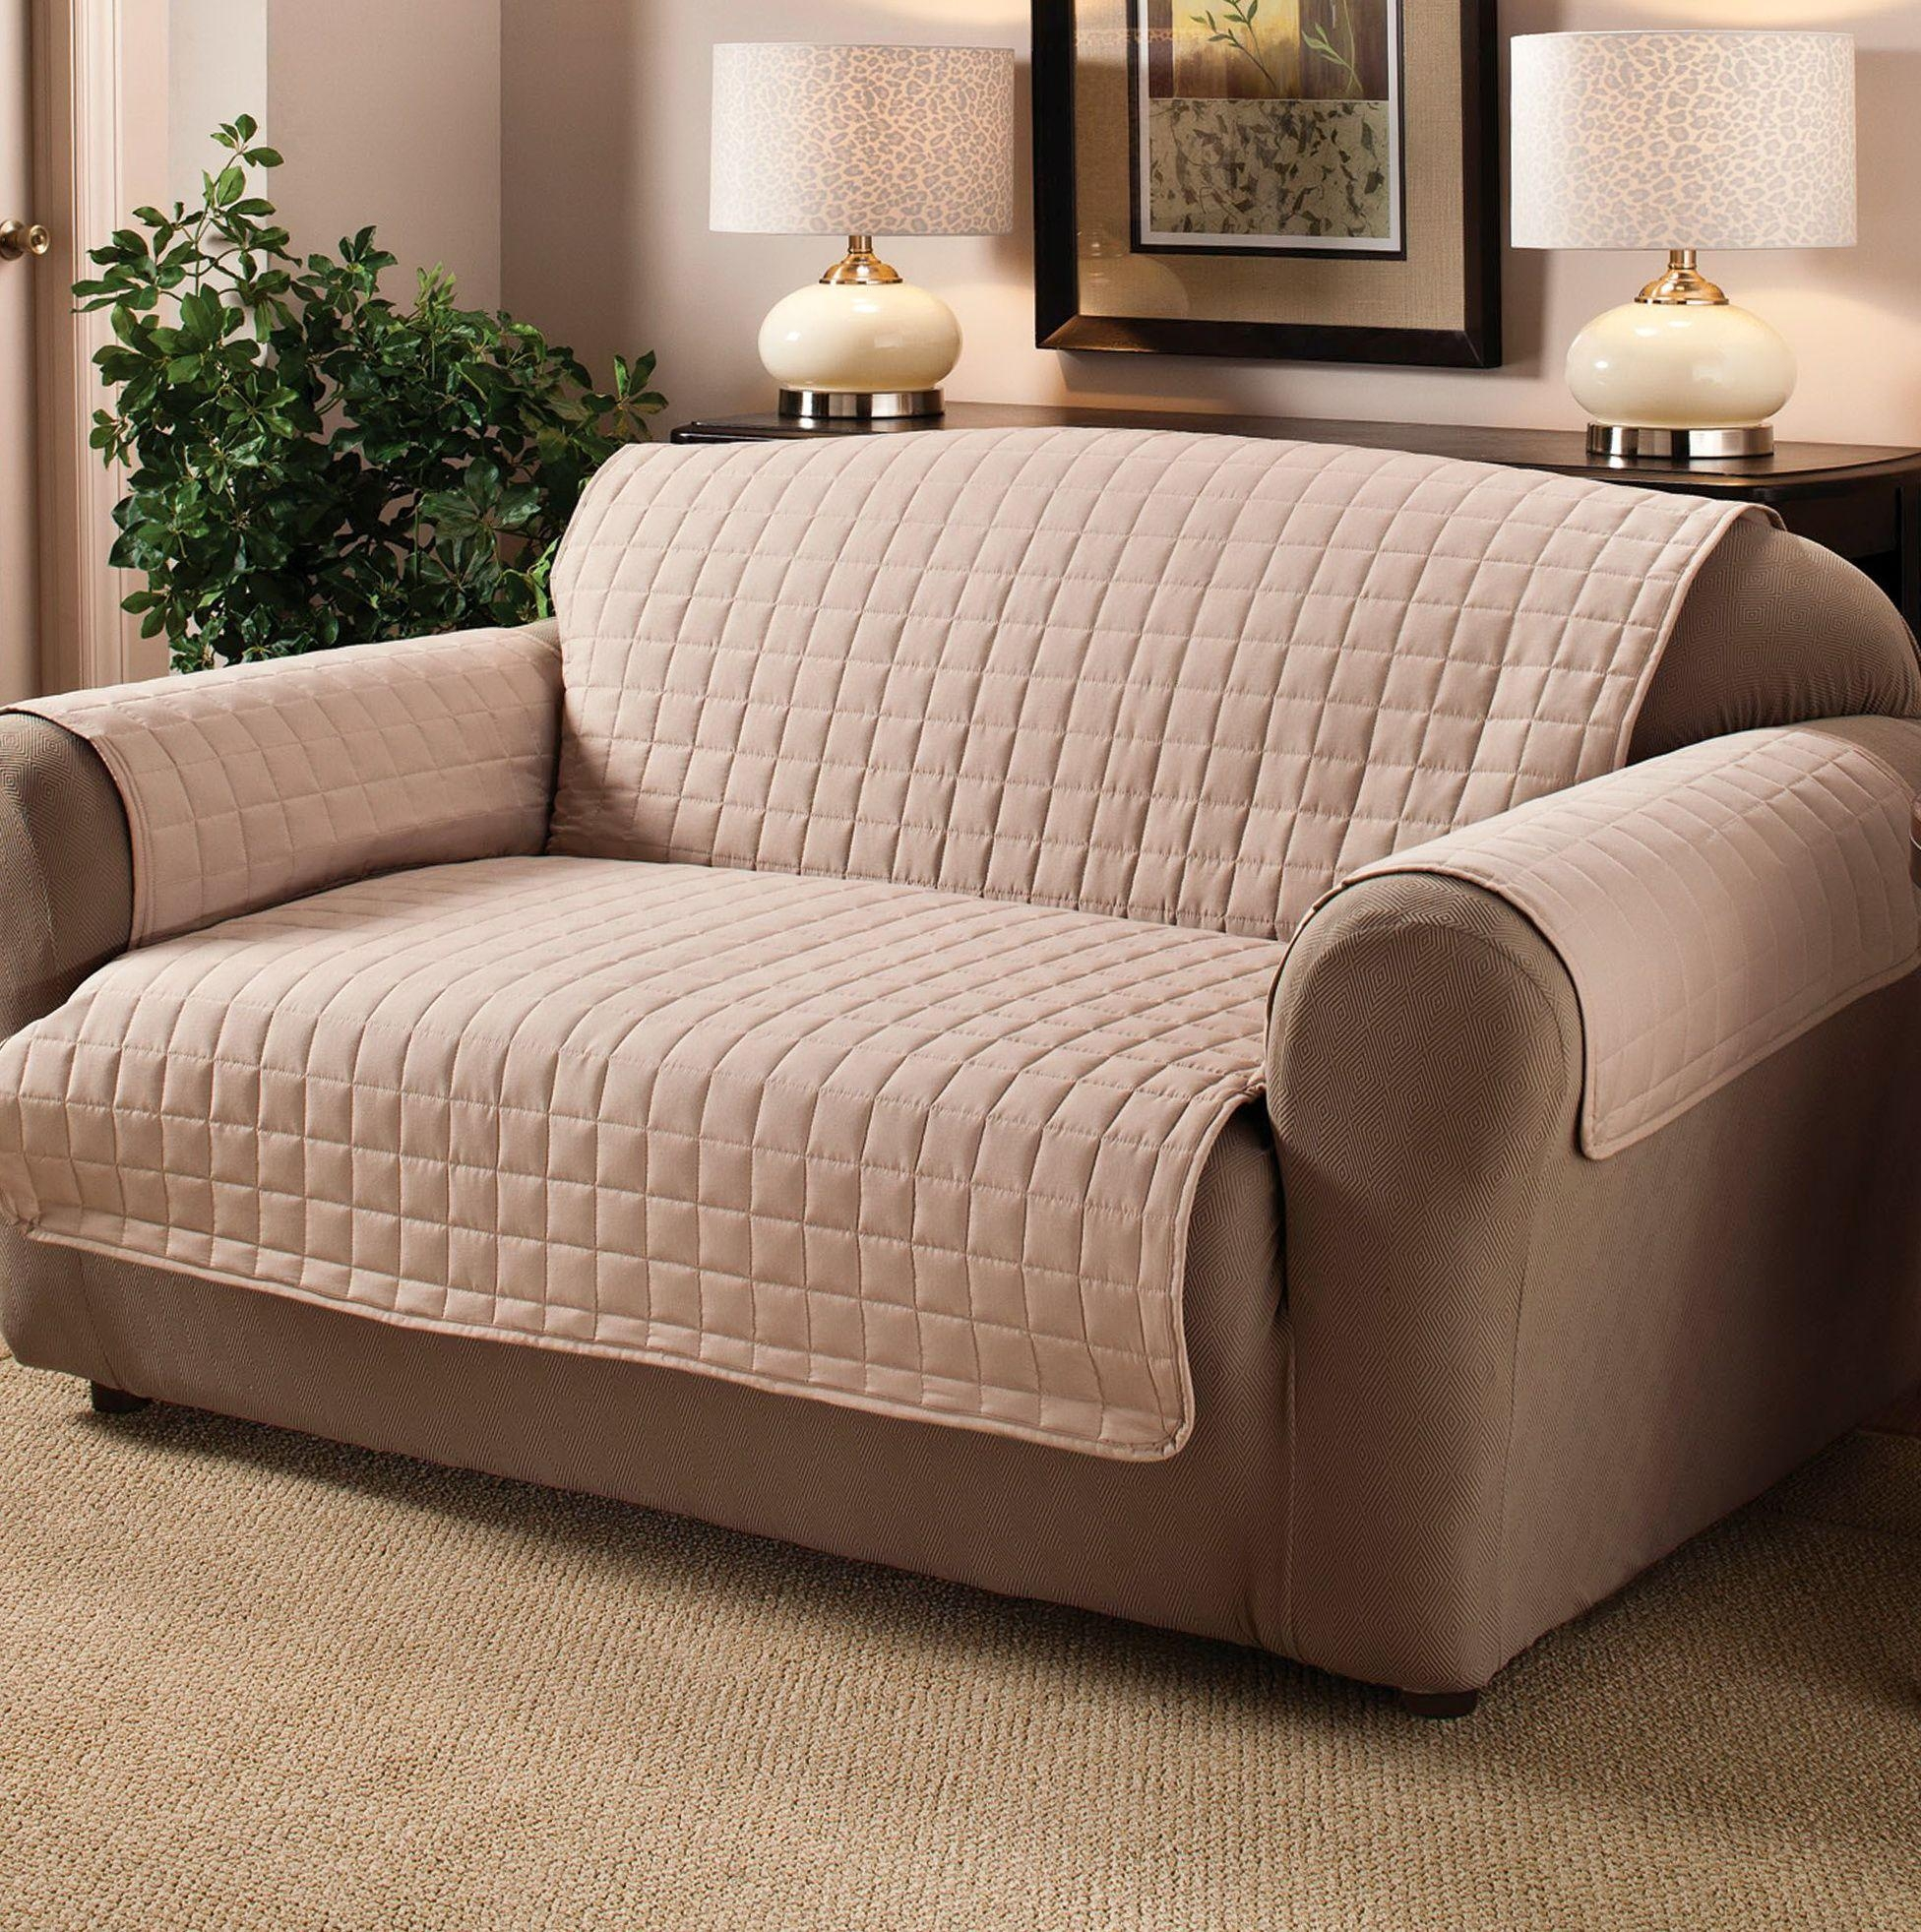 Furniture: Couch Covers For Pets Walmart | Couch Covers Walmart Throughout Slipcover For Reclining Sofas (Image 6 of 20)